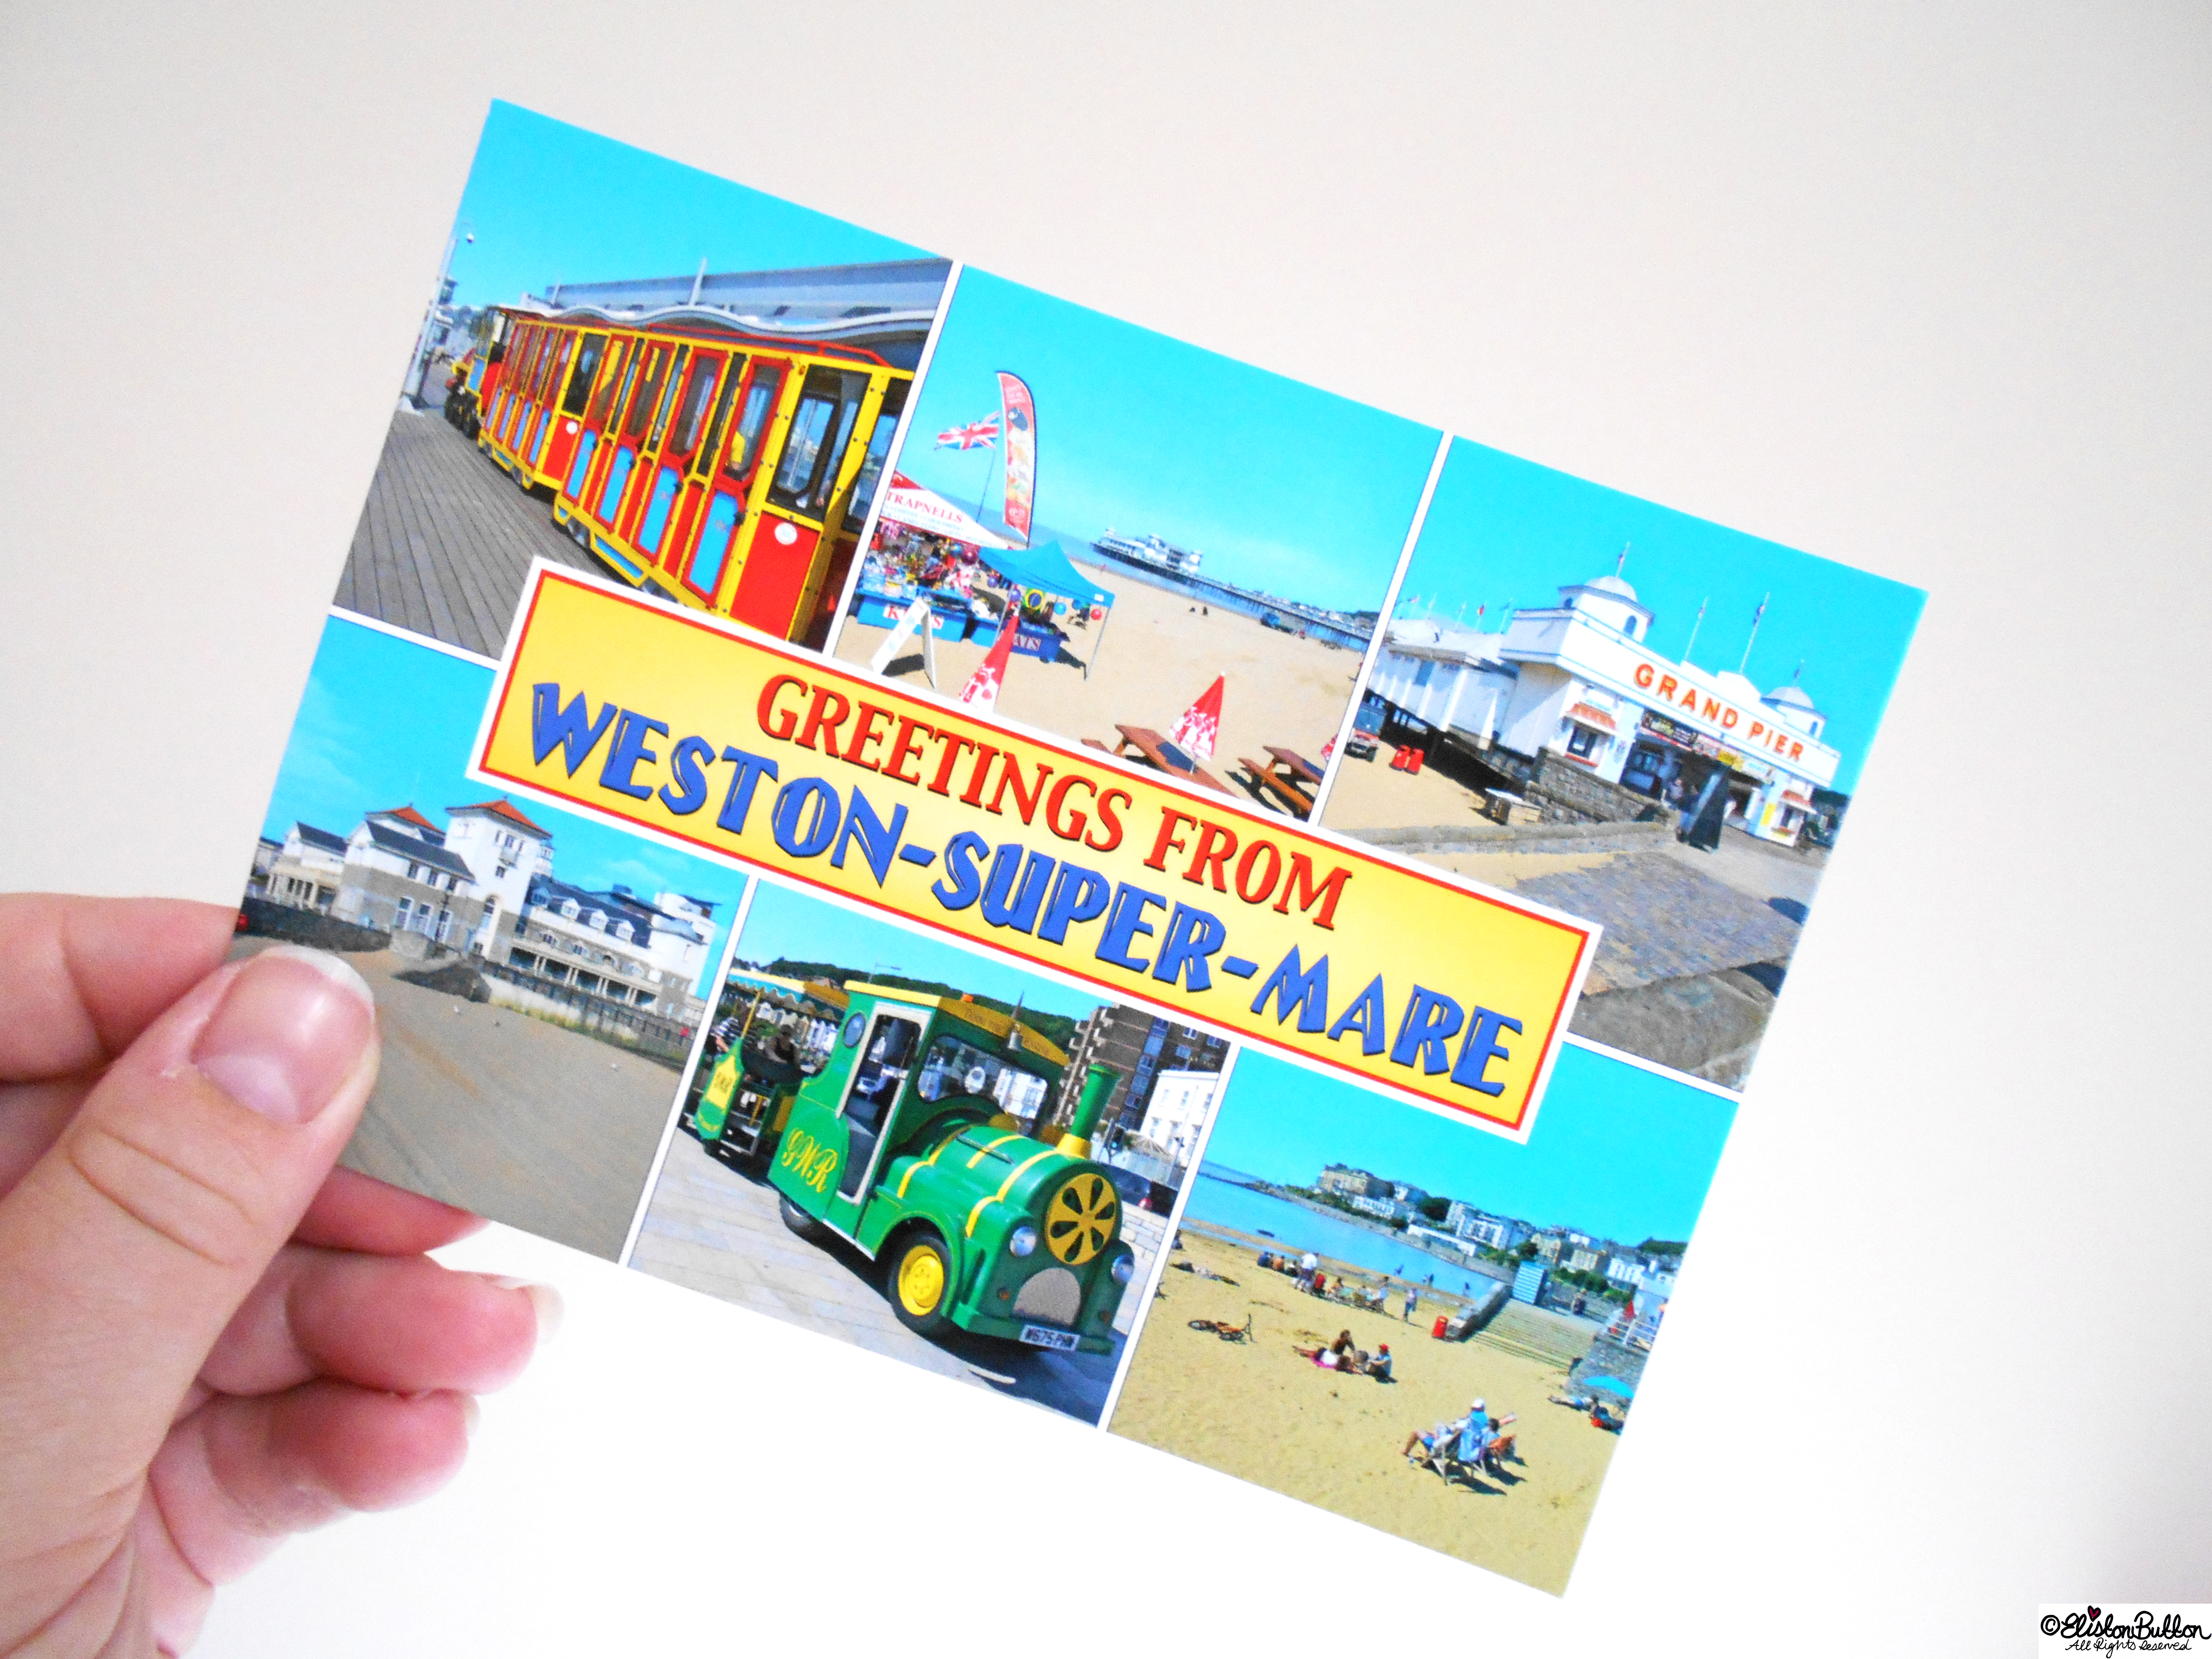 Weston-Super-Mare Postcard - The Great British Seaside (and an Eliston Button Autumn Sale) at www.elistonbutton.com - Eliston Button - That Crafty Kid – Art, Design, Craft & Adventure.